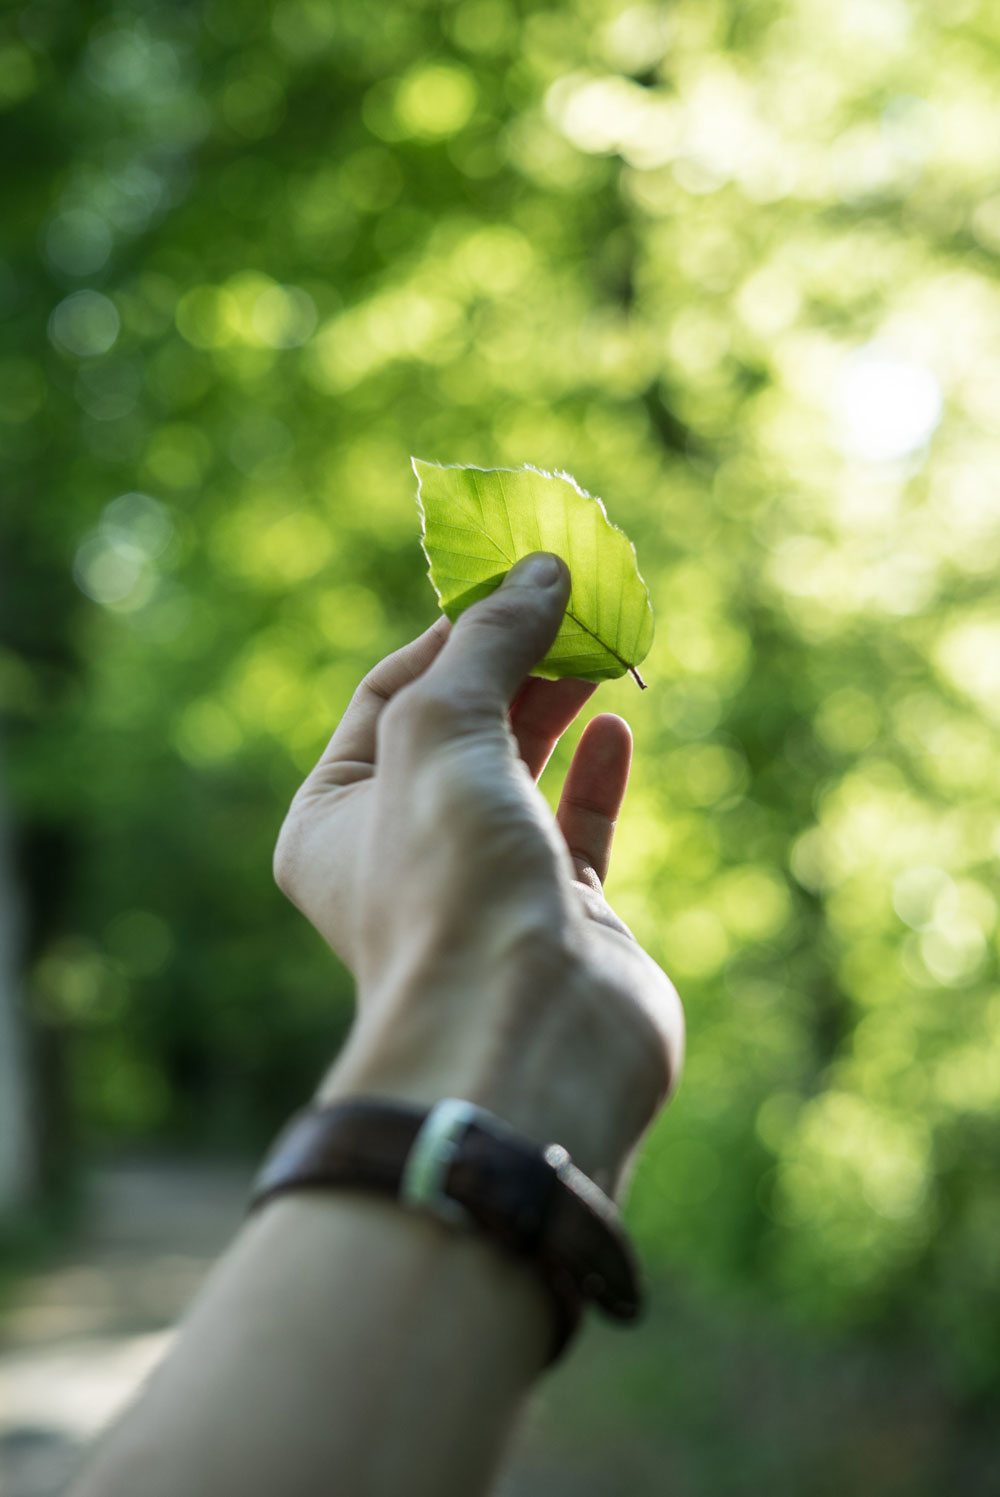 POV photo of a hand holding a green leaf.